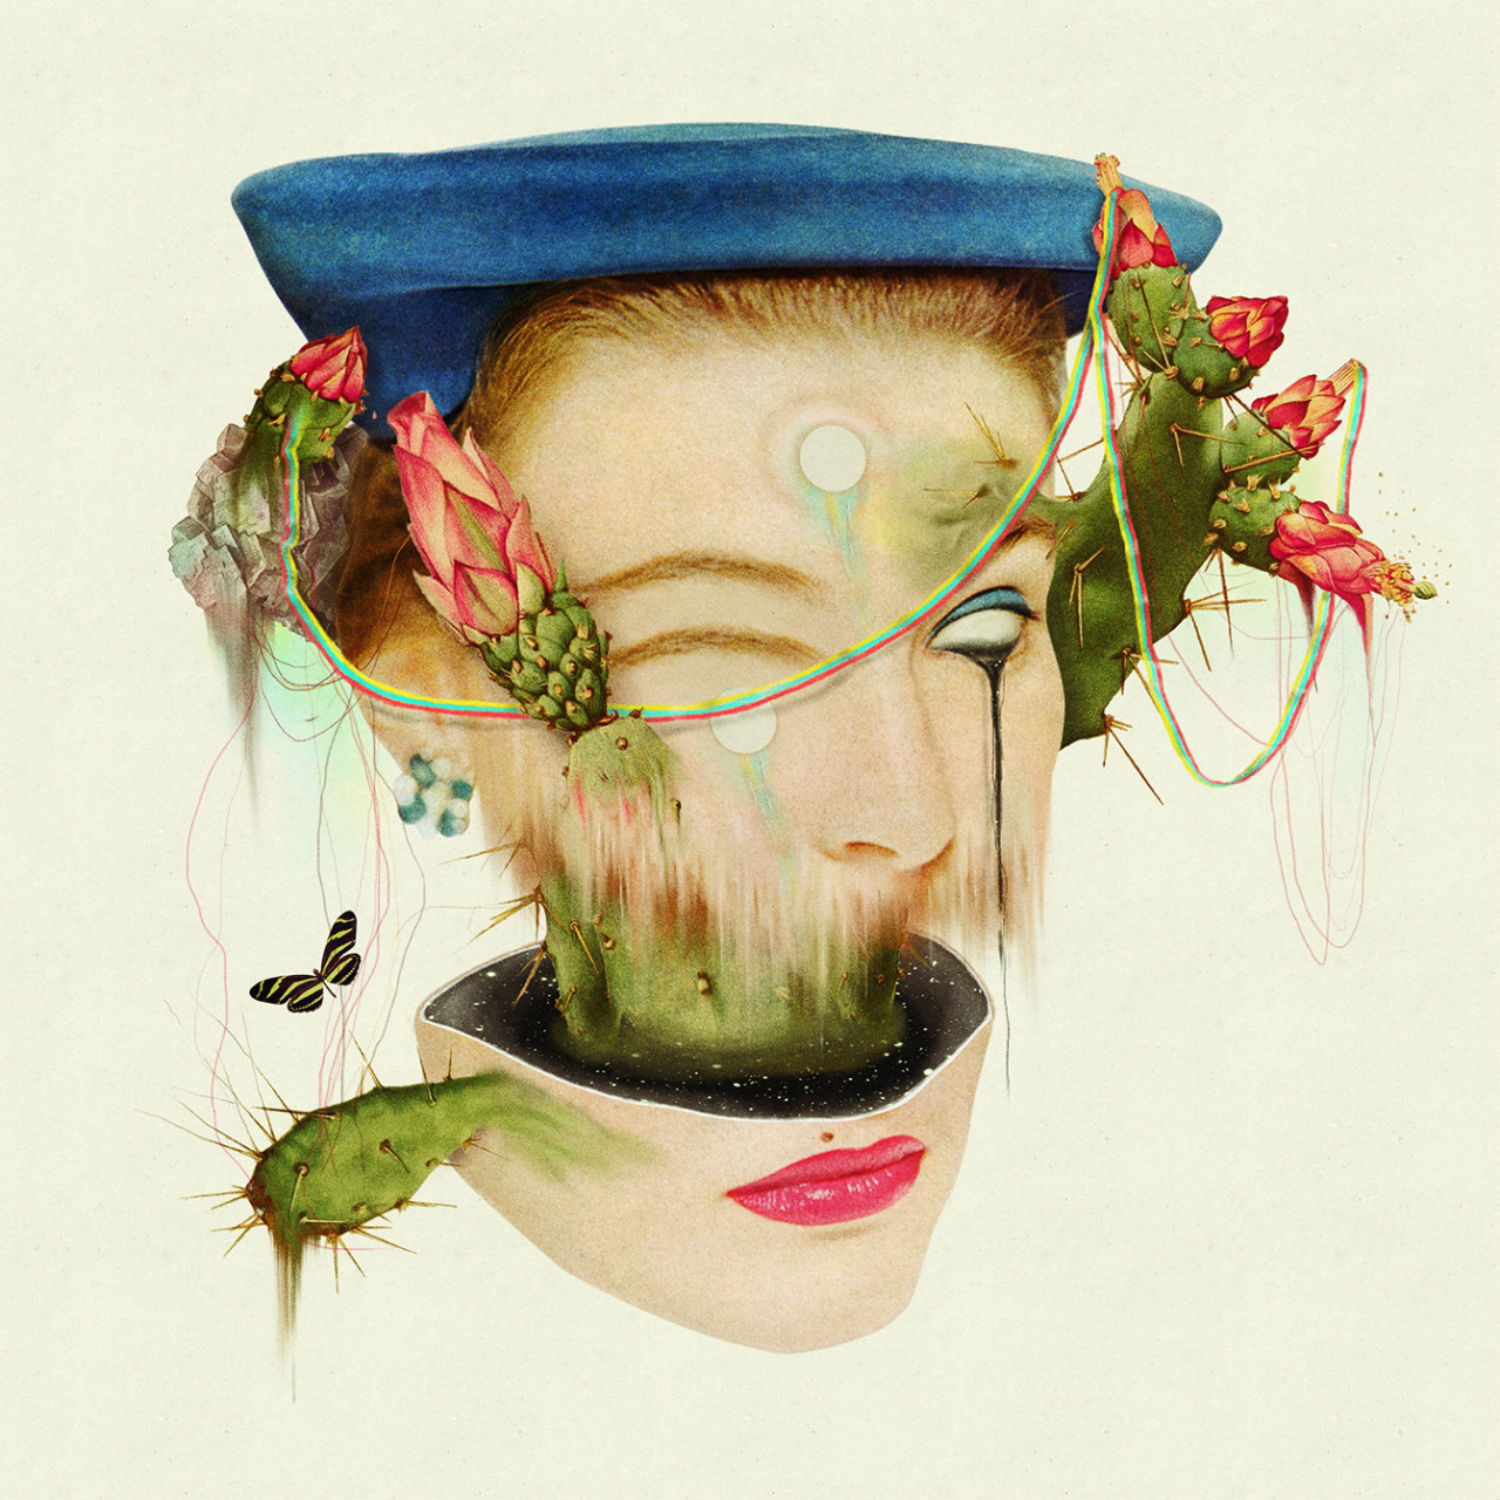 dromsjel illustration colour collage abstract woman portrait